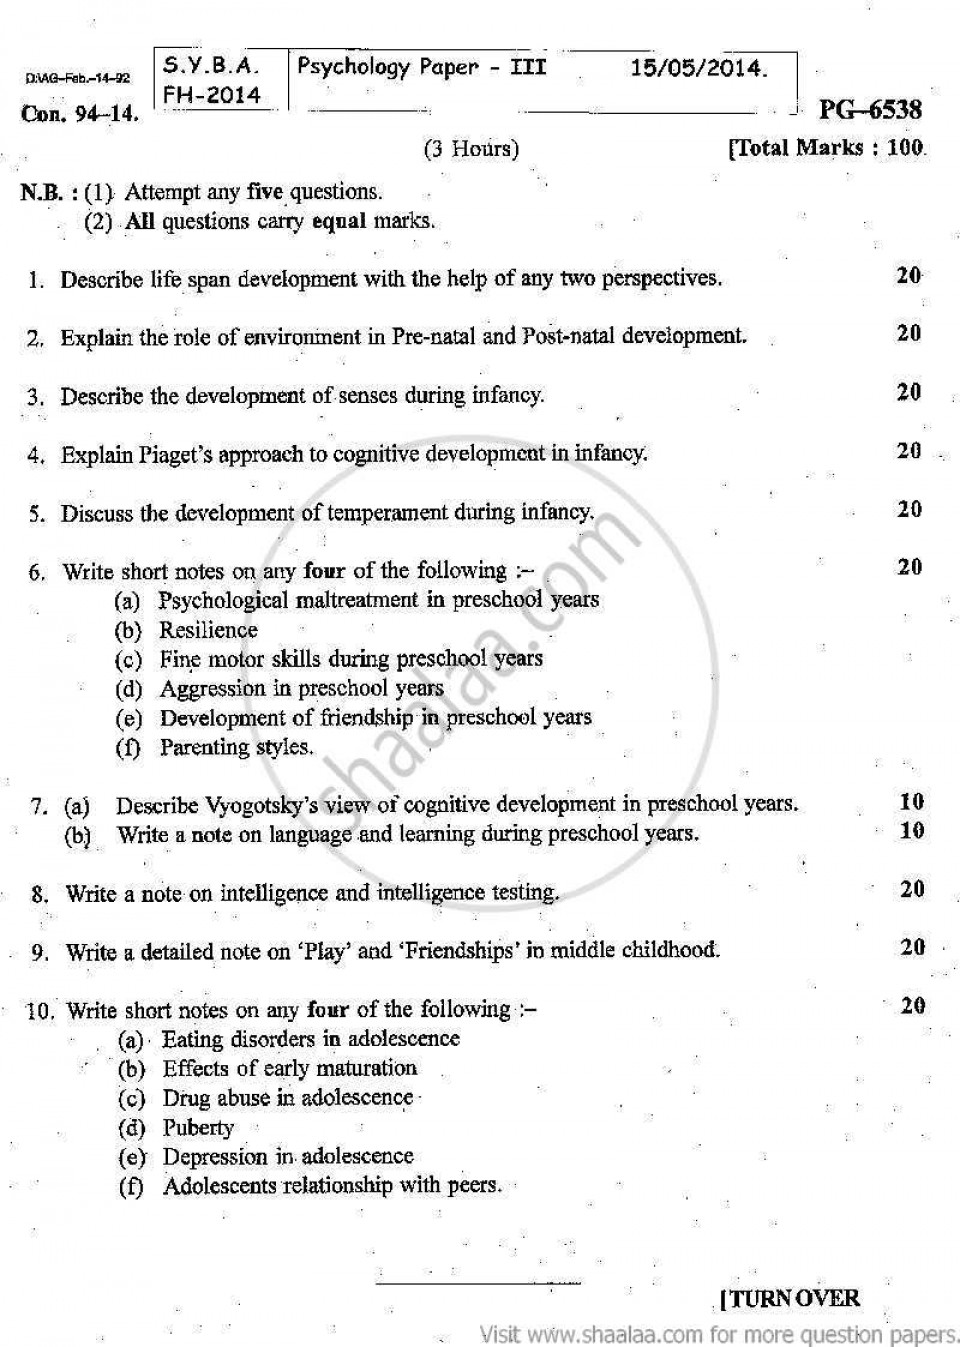 007 Developmental Psychology Essay Gender Bias Help Papers Atsl Ip Writing Service Topics Research Child Paper Rare Depression 960